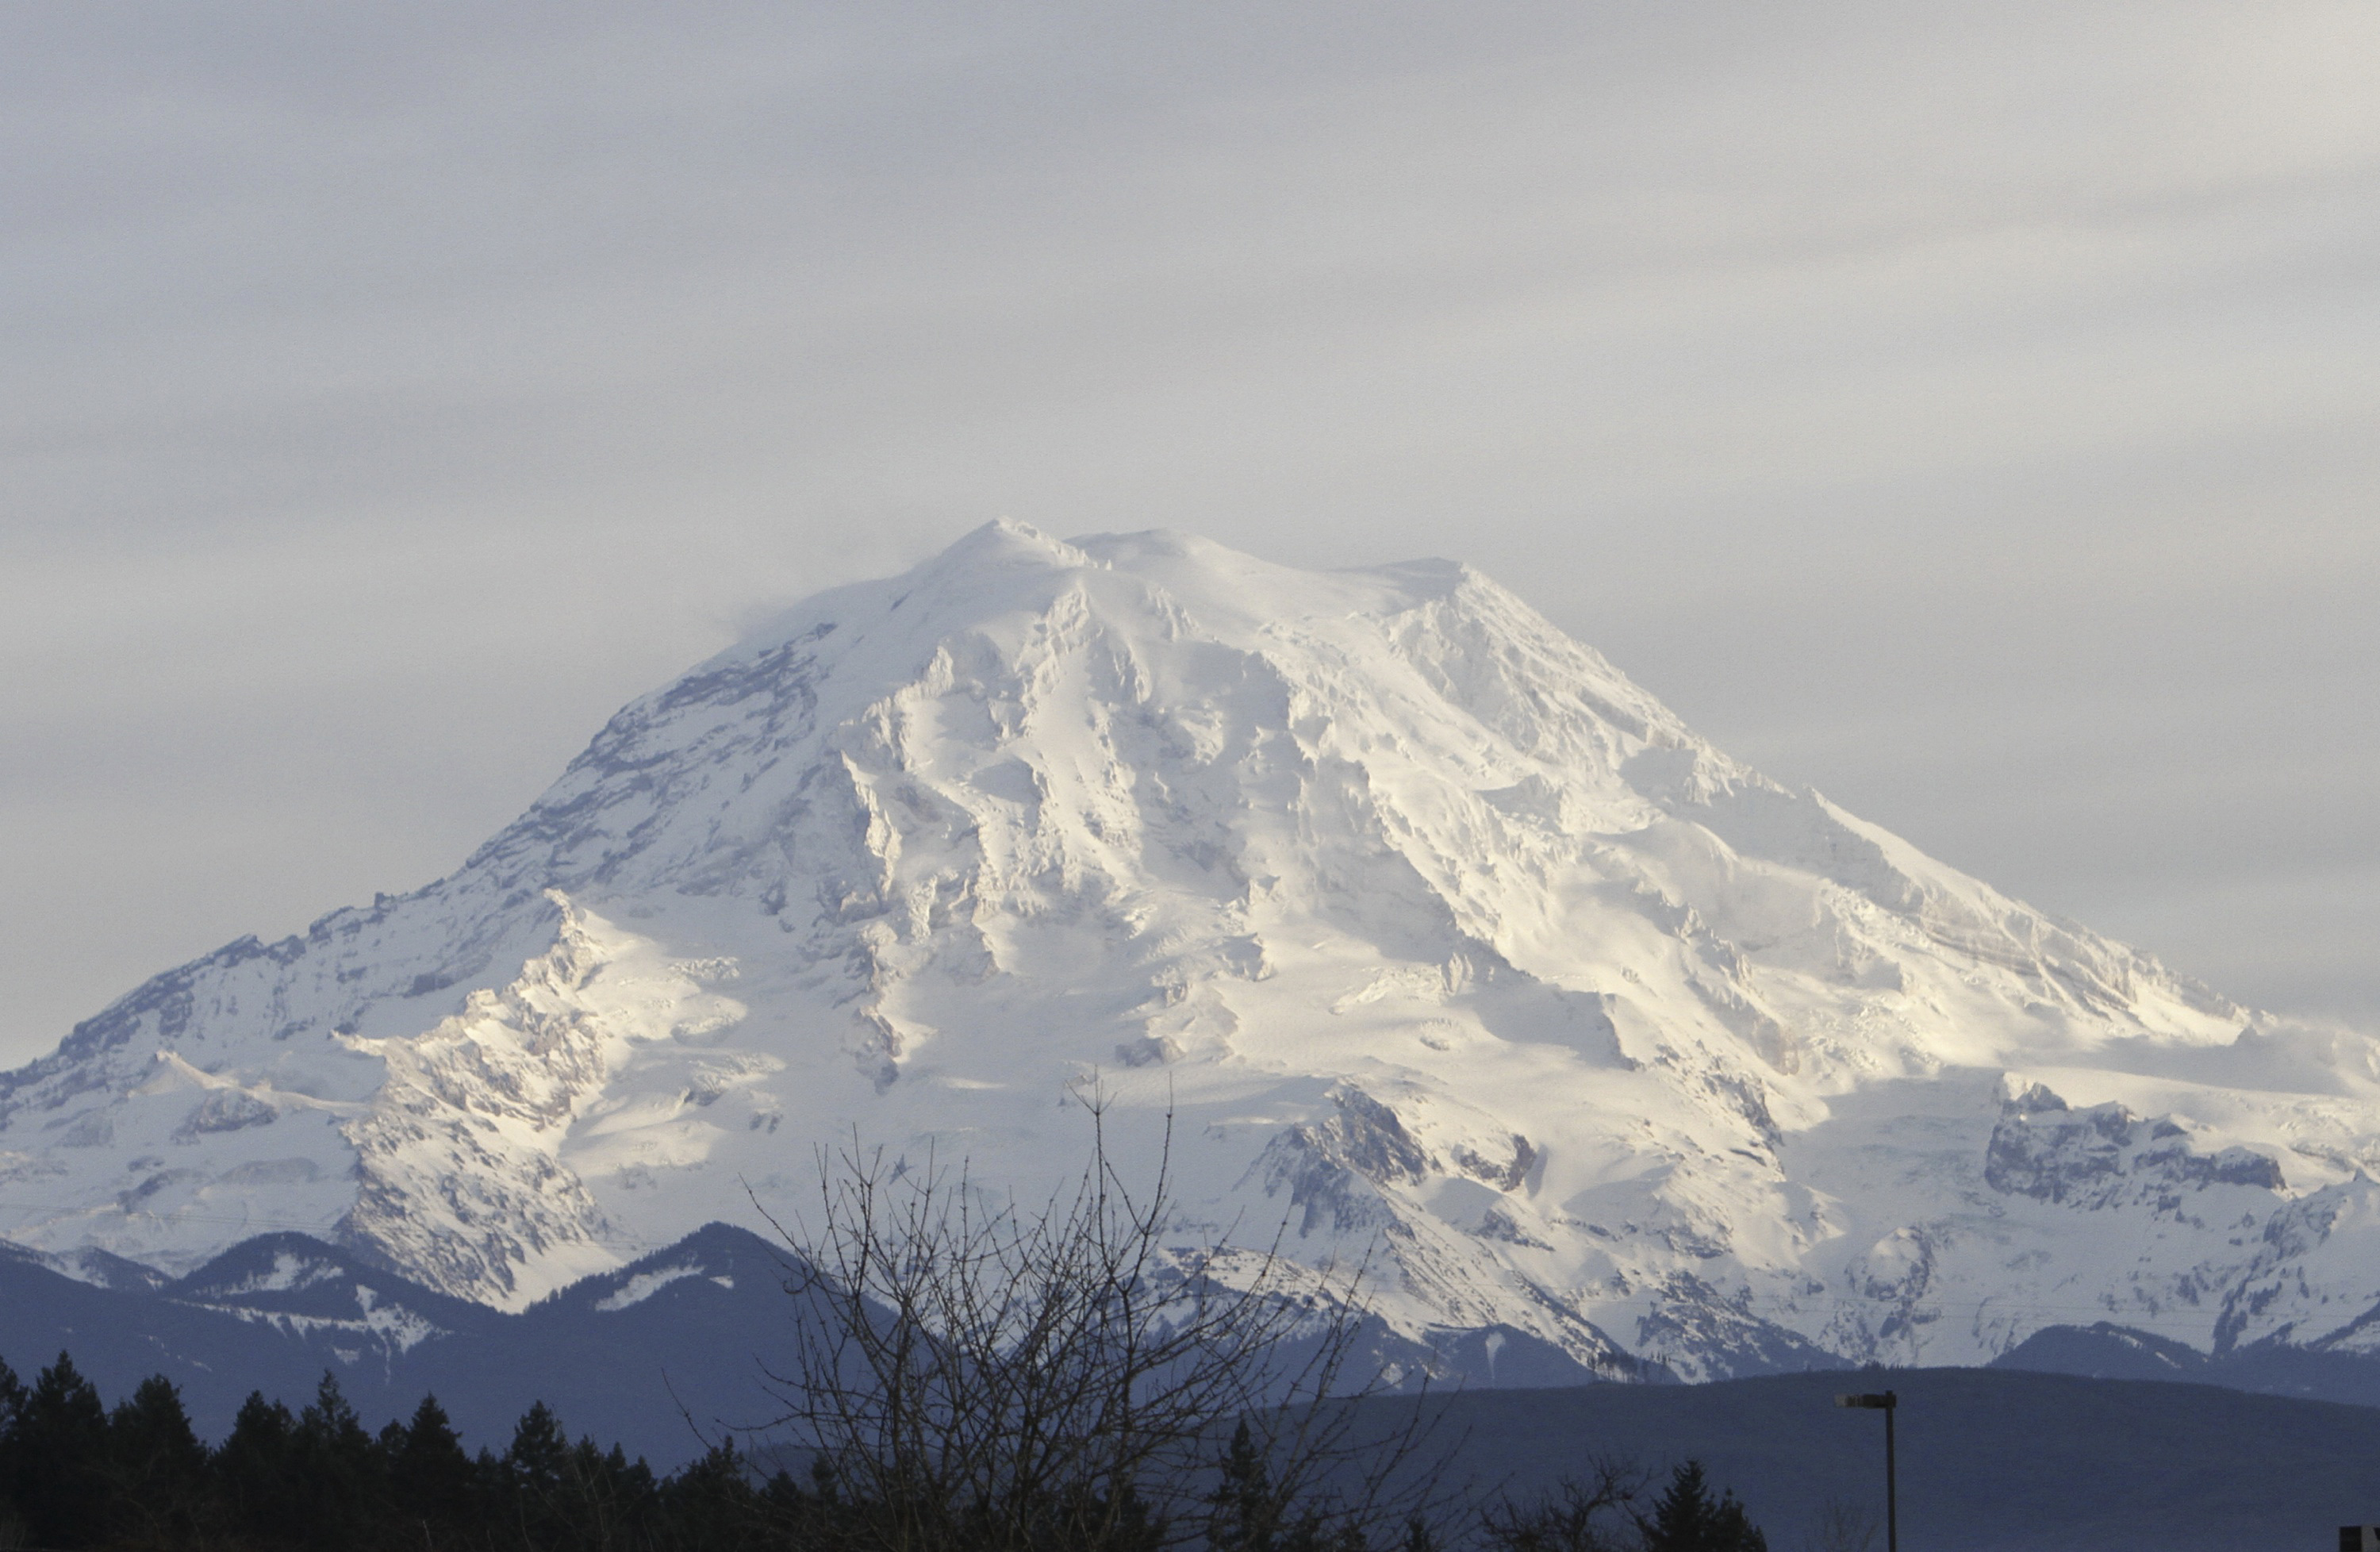 mount rainier senior personals Meet beautiful mount rainier coast guard women today on militarysinglescom start getting to know each other on video chat, im and more join now.